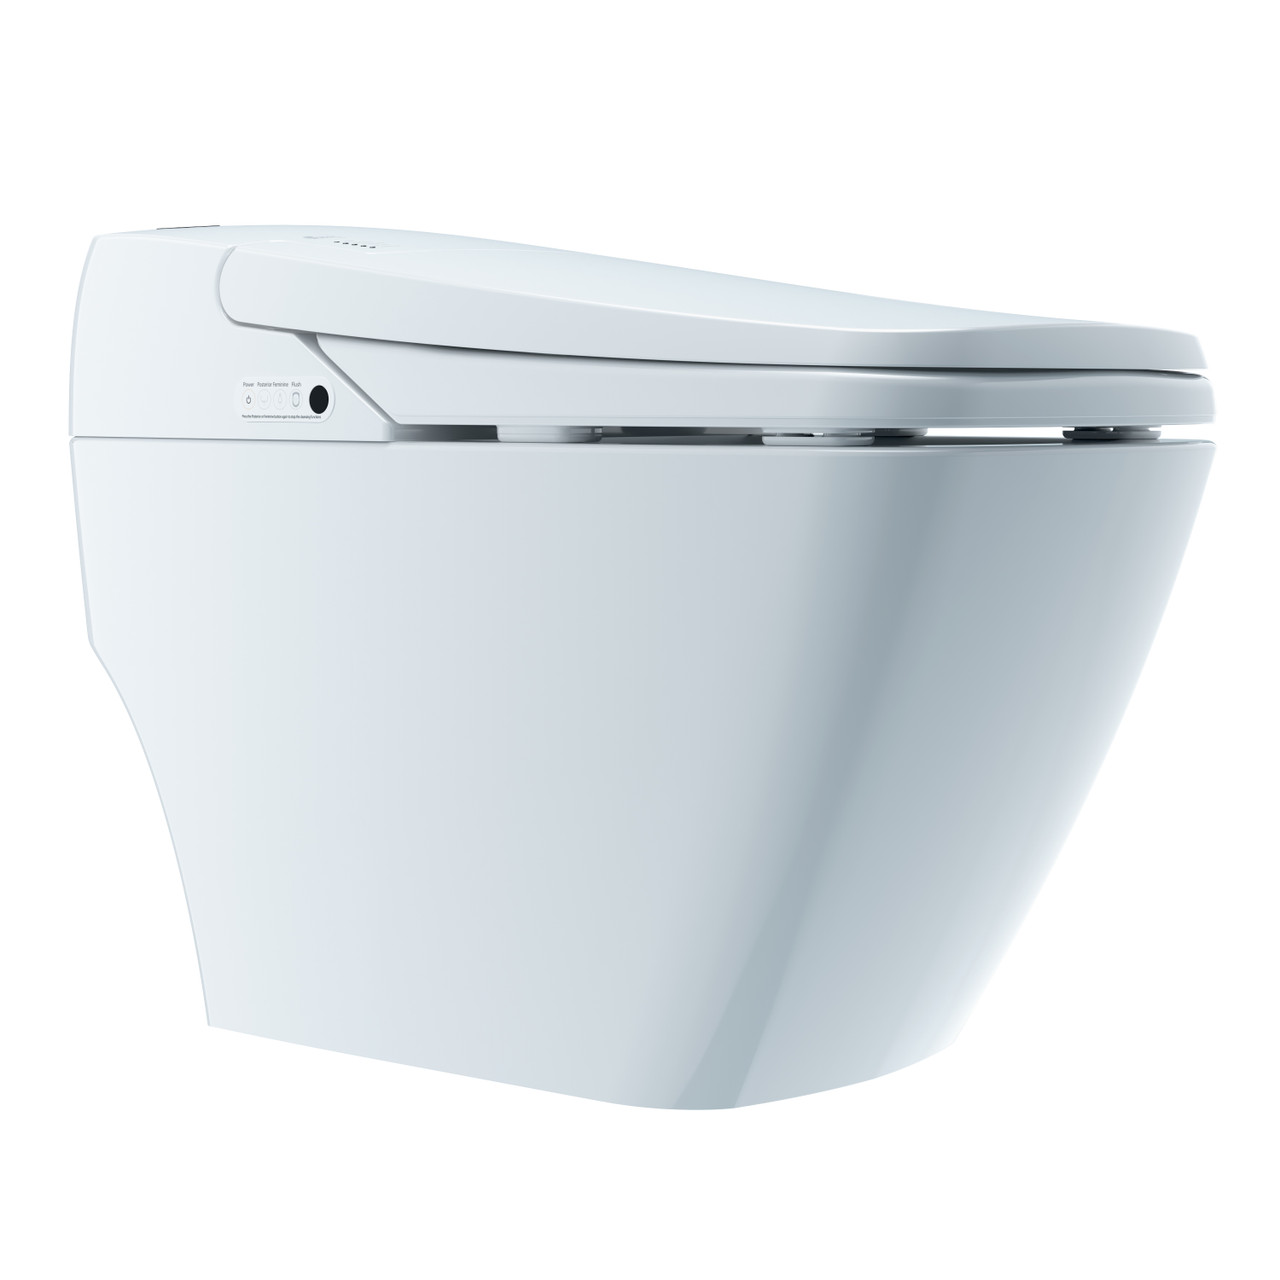 Outstanding Bio Bidet Prodigy P 770 Integrated Bidet Toilet System Dailytribune Chair Design For Home Dailytribuneorg